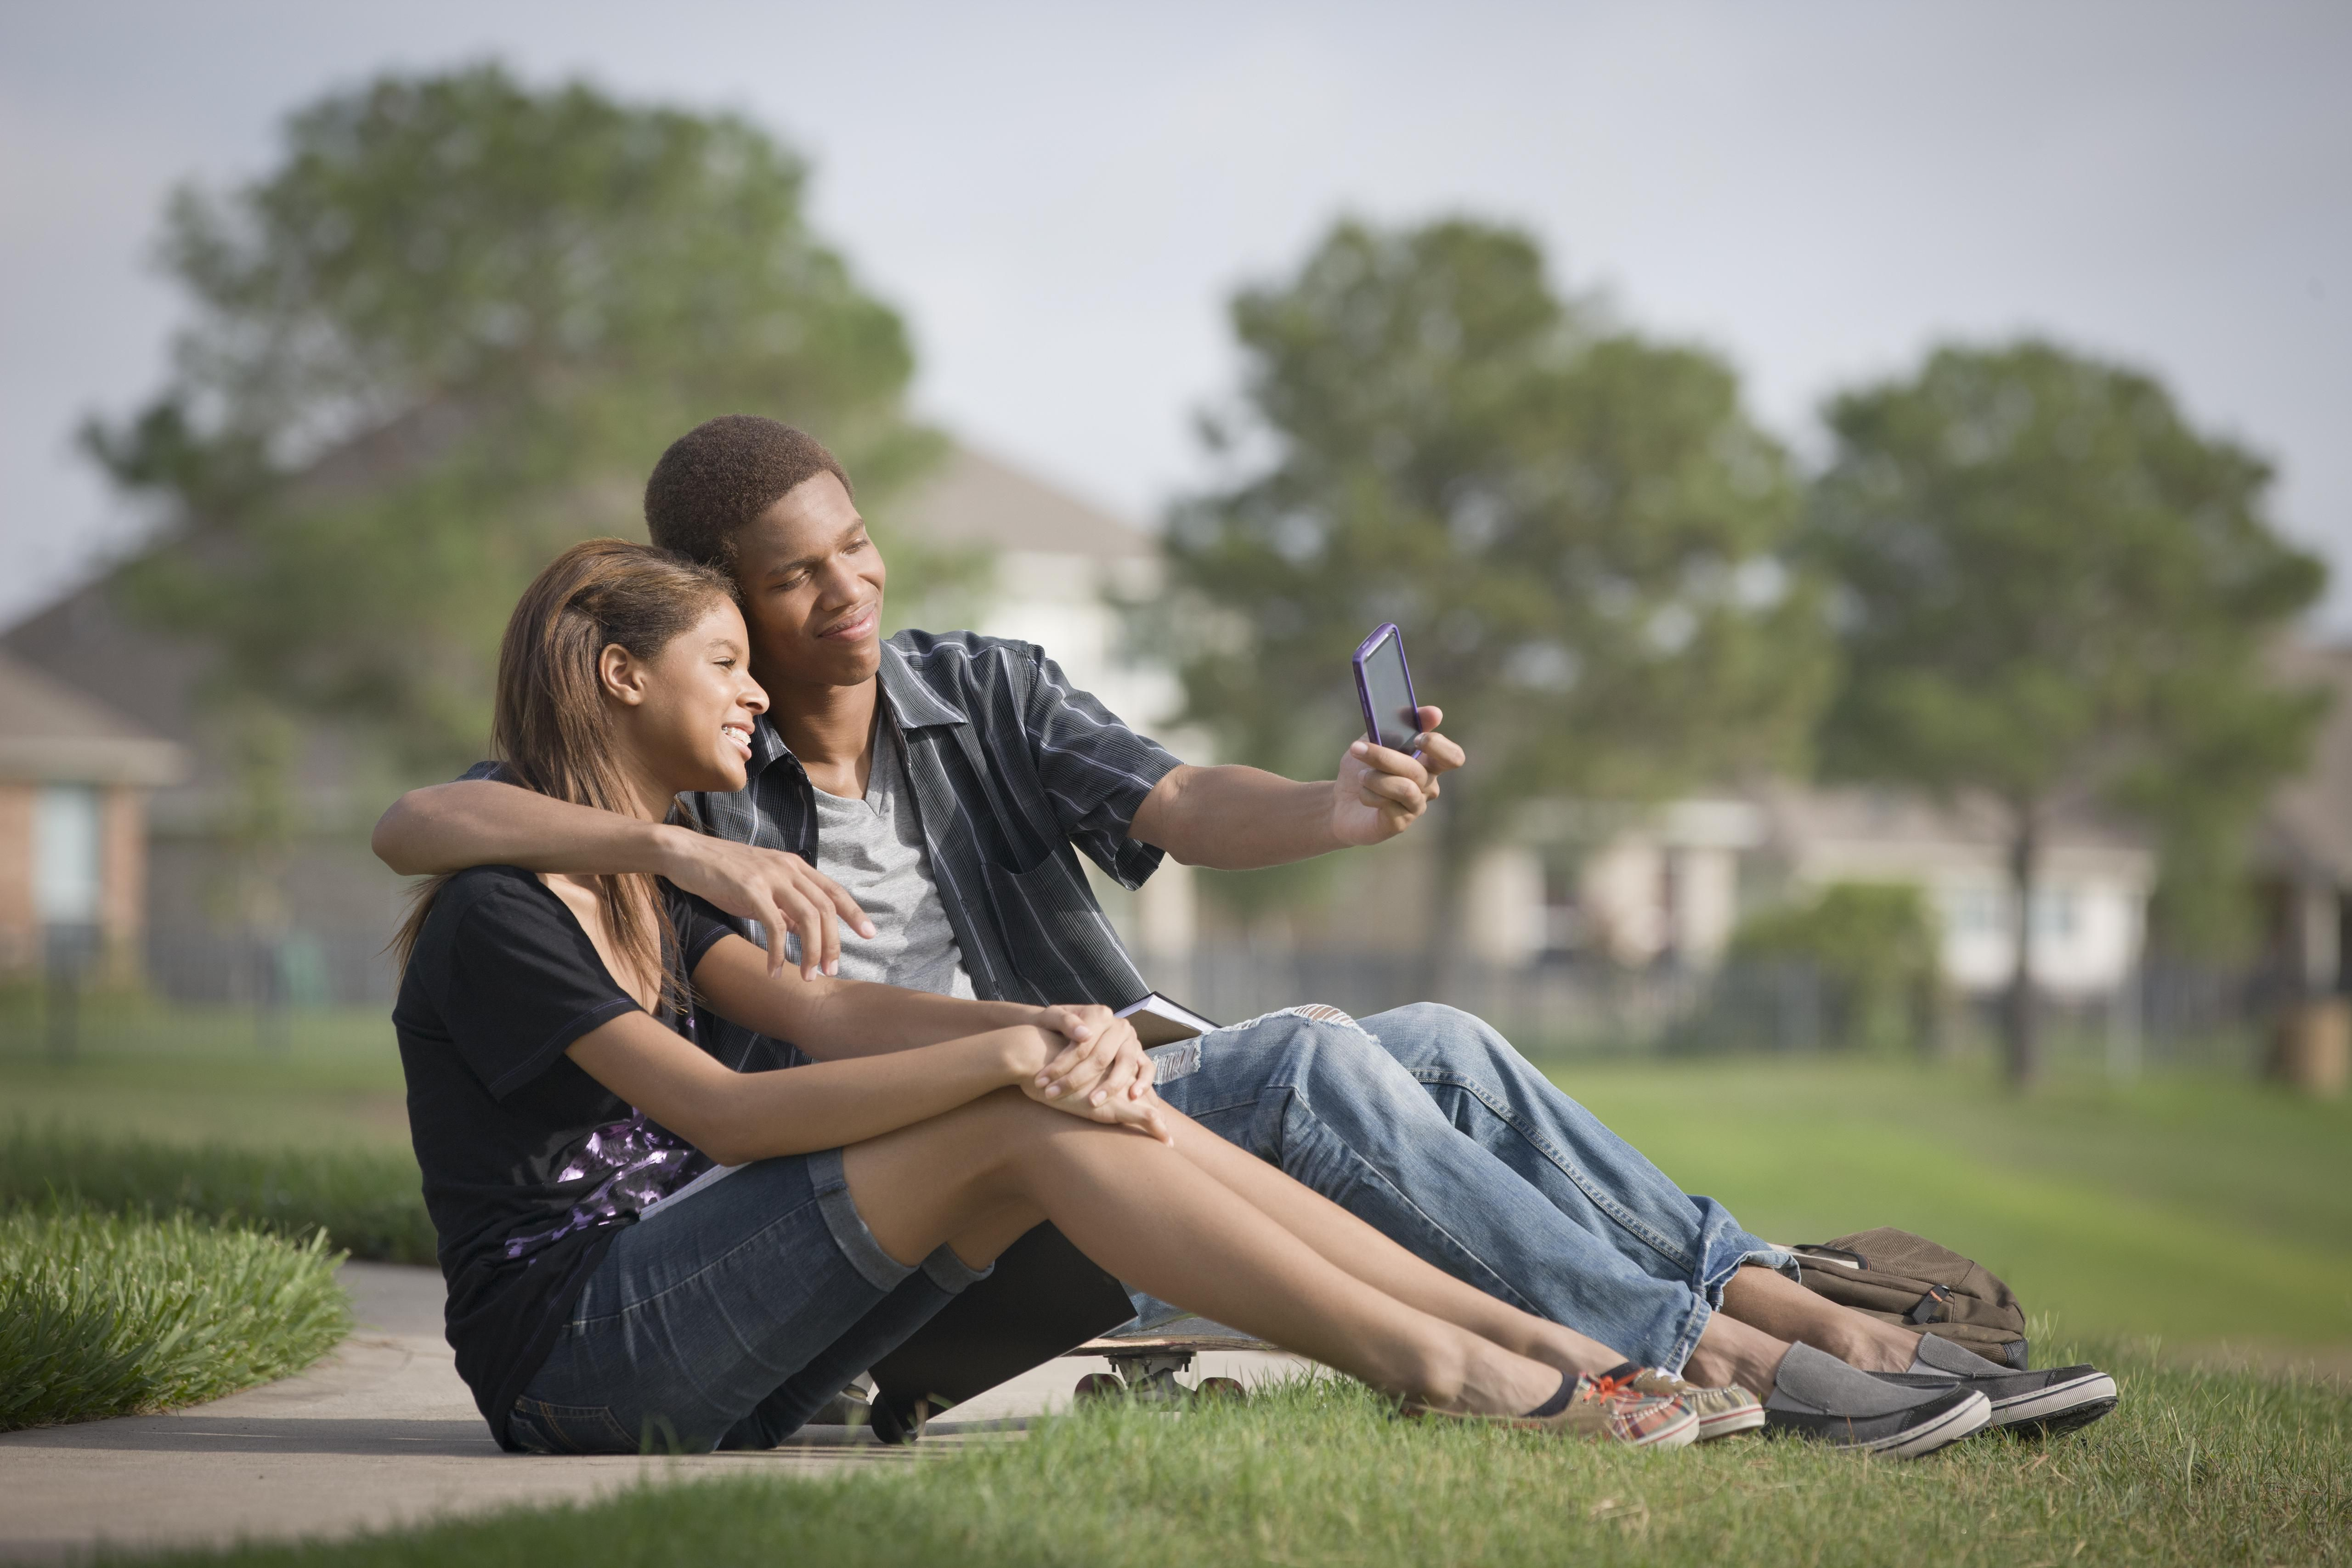 Wolverhampton dating site for singles, join free